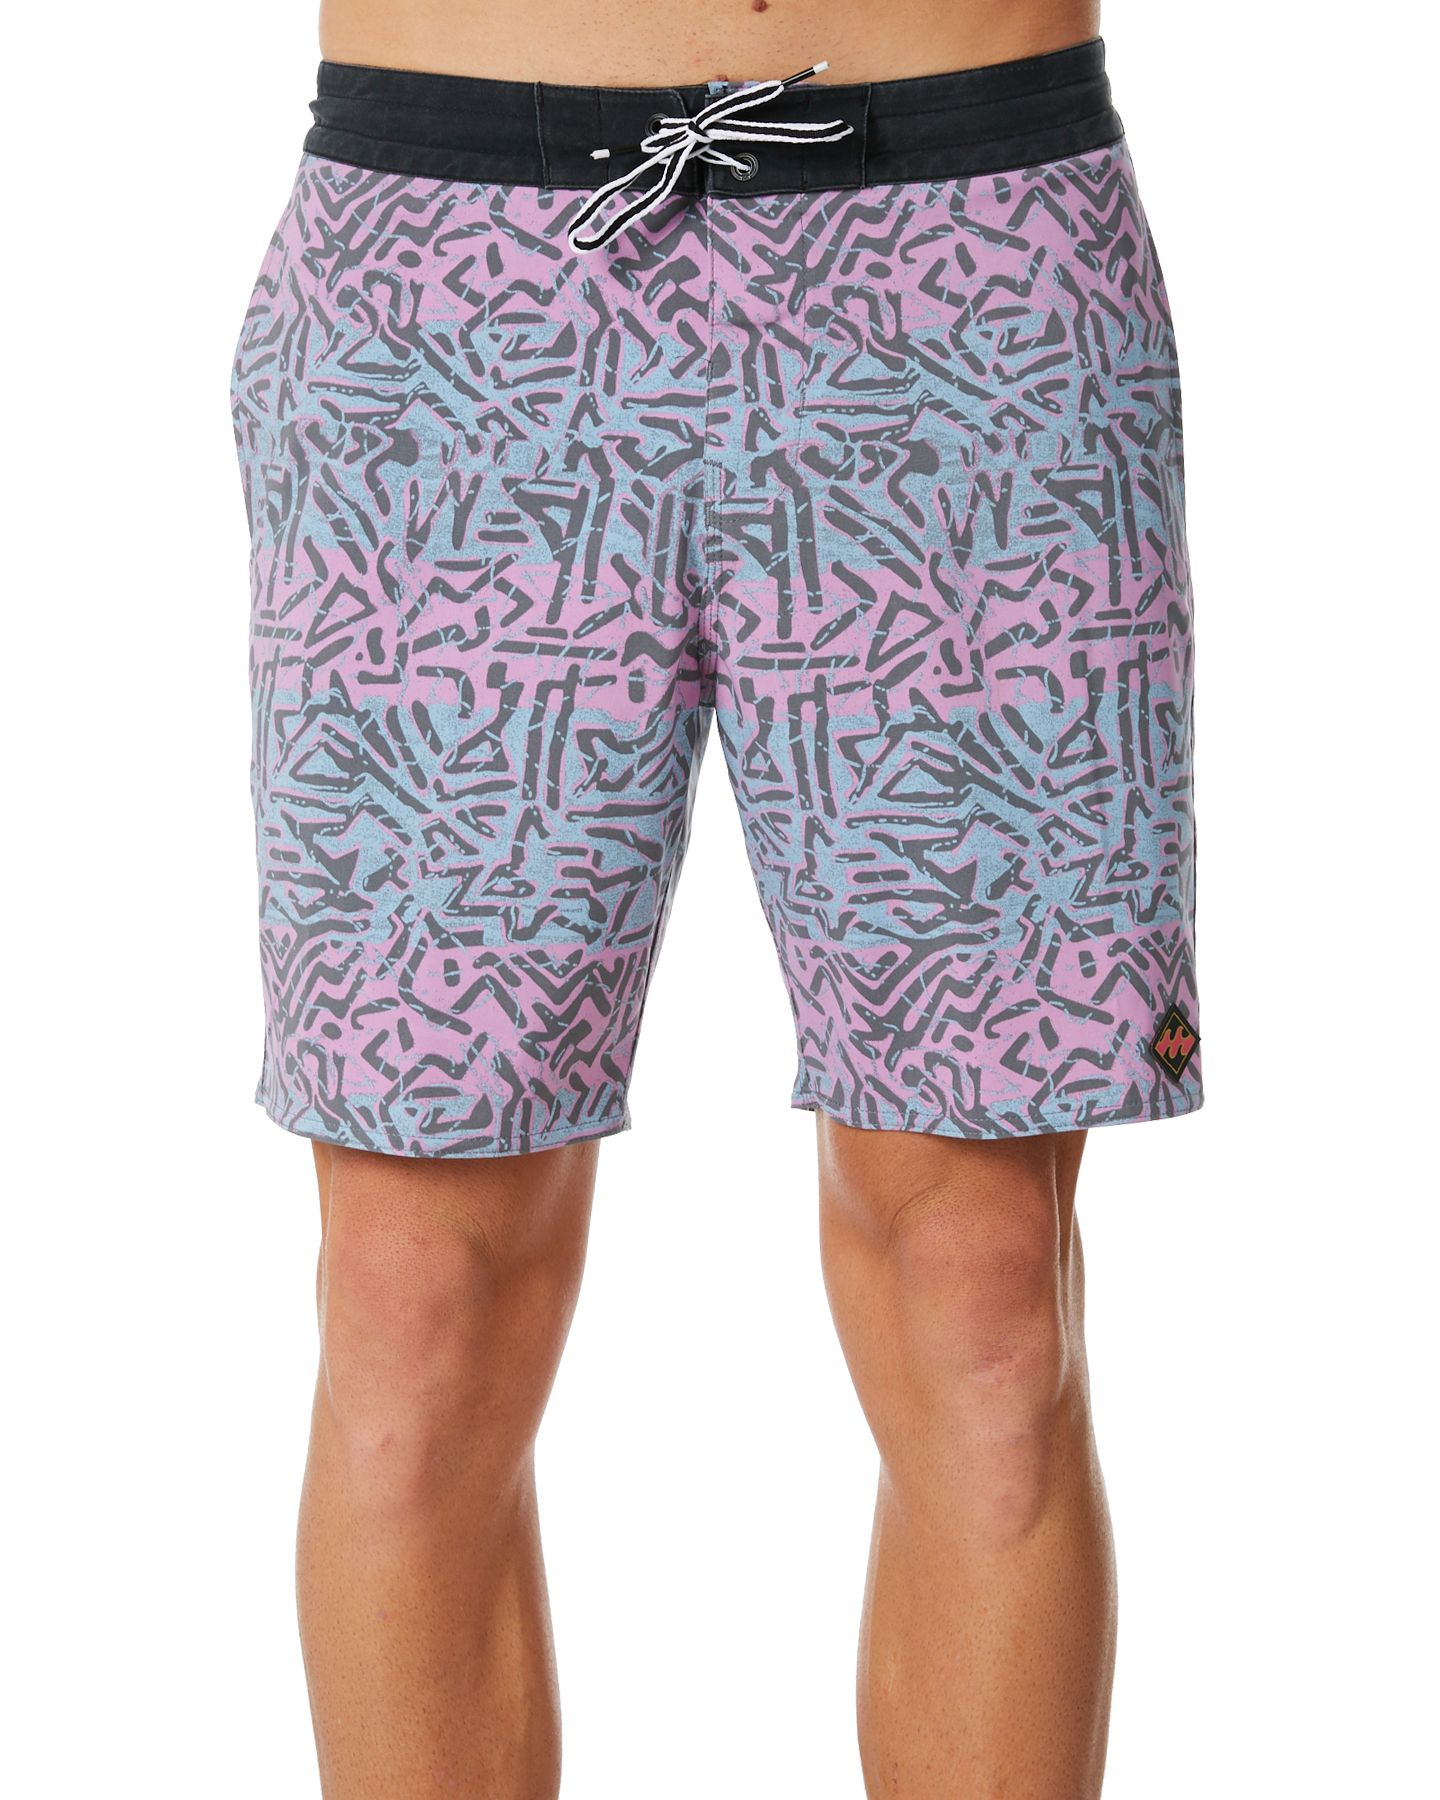 cb80188af99b Billabong Sundays Lt Mens Boardshort - Seafoam | SurfStitch ...